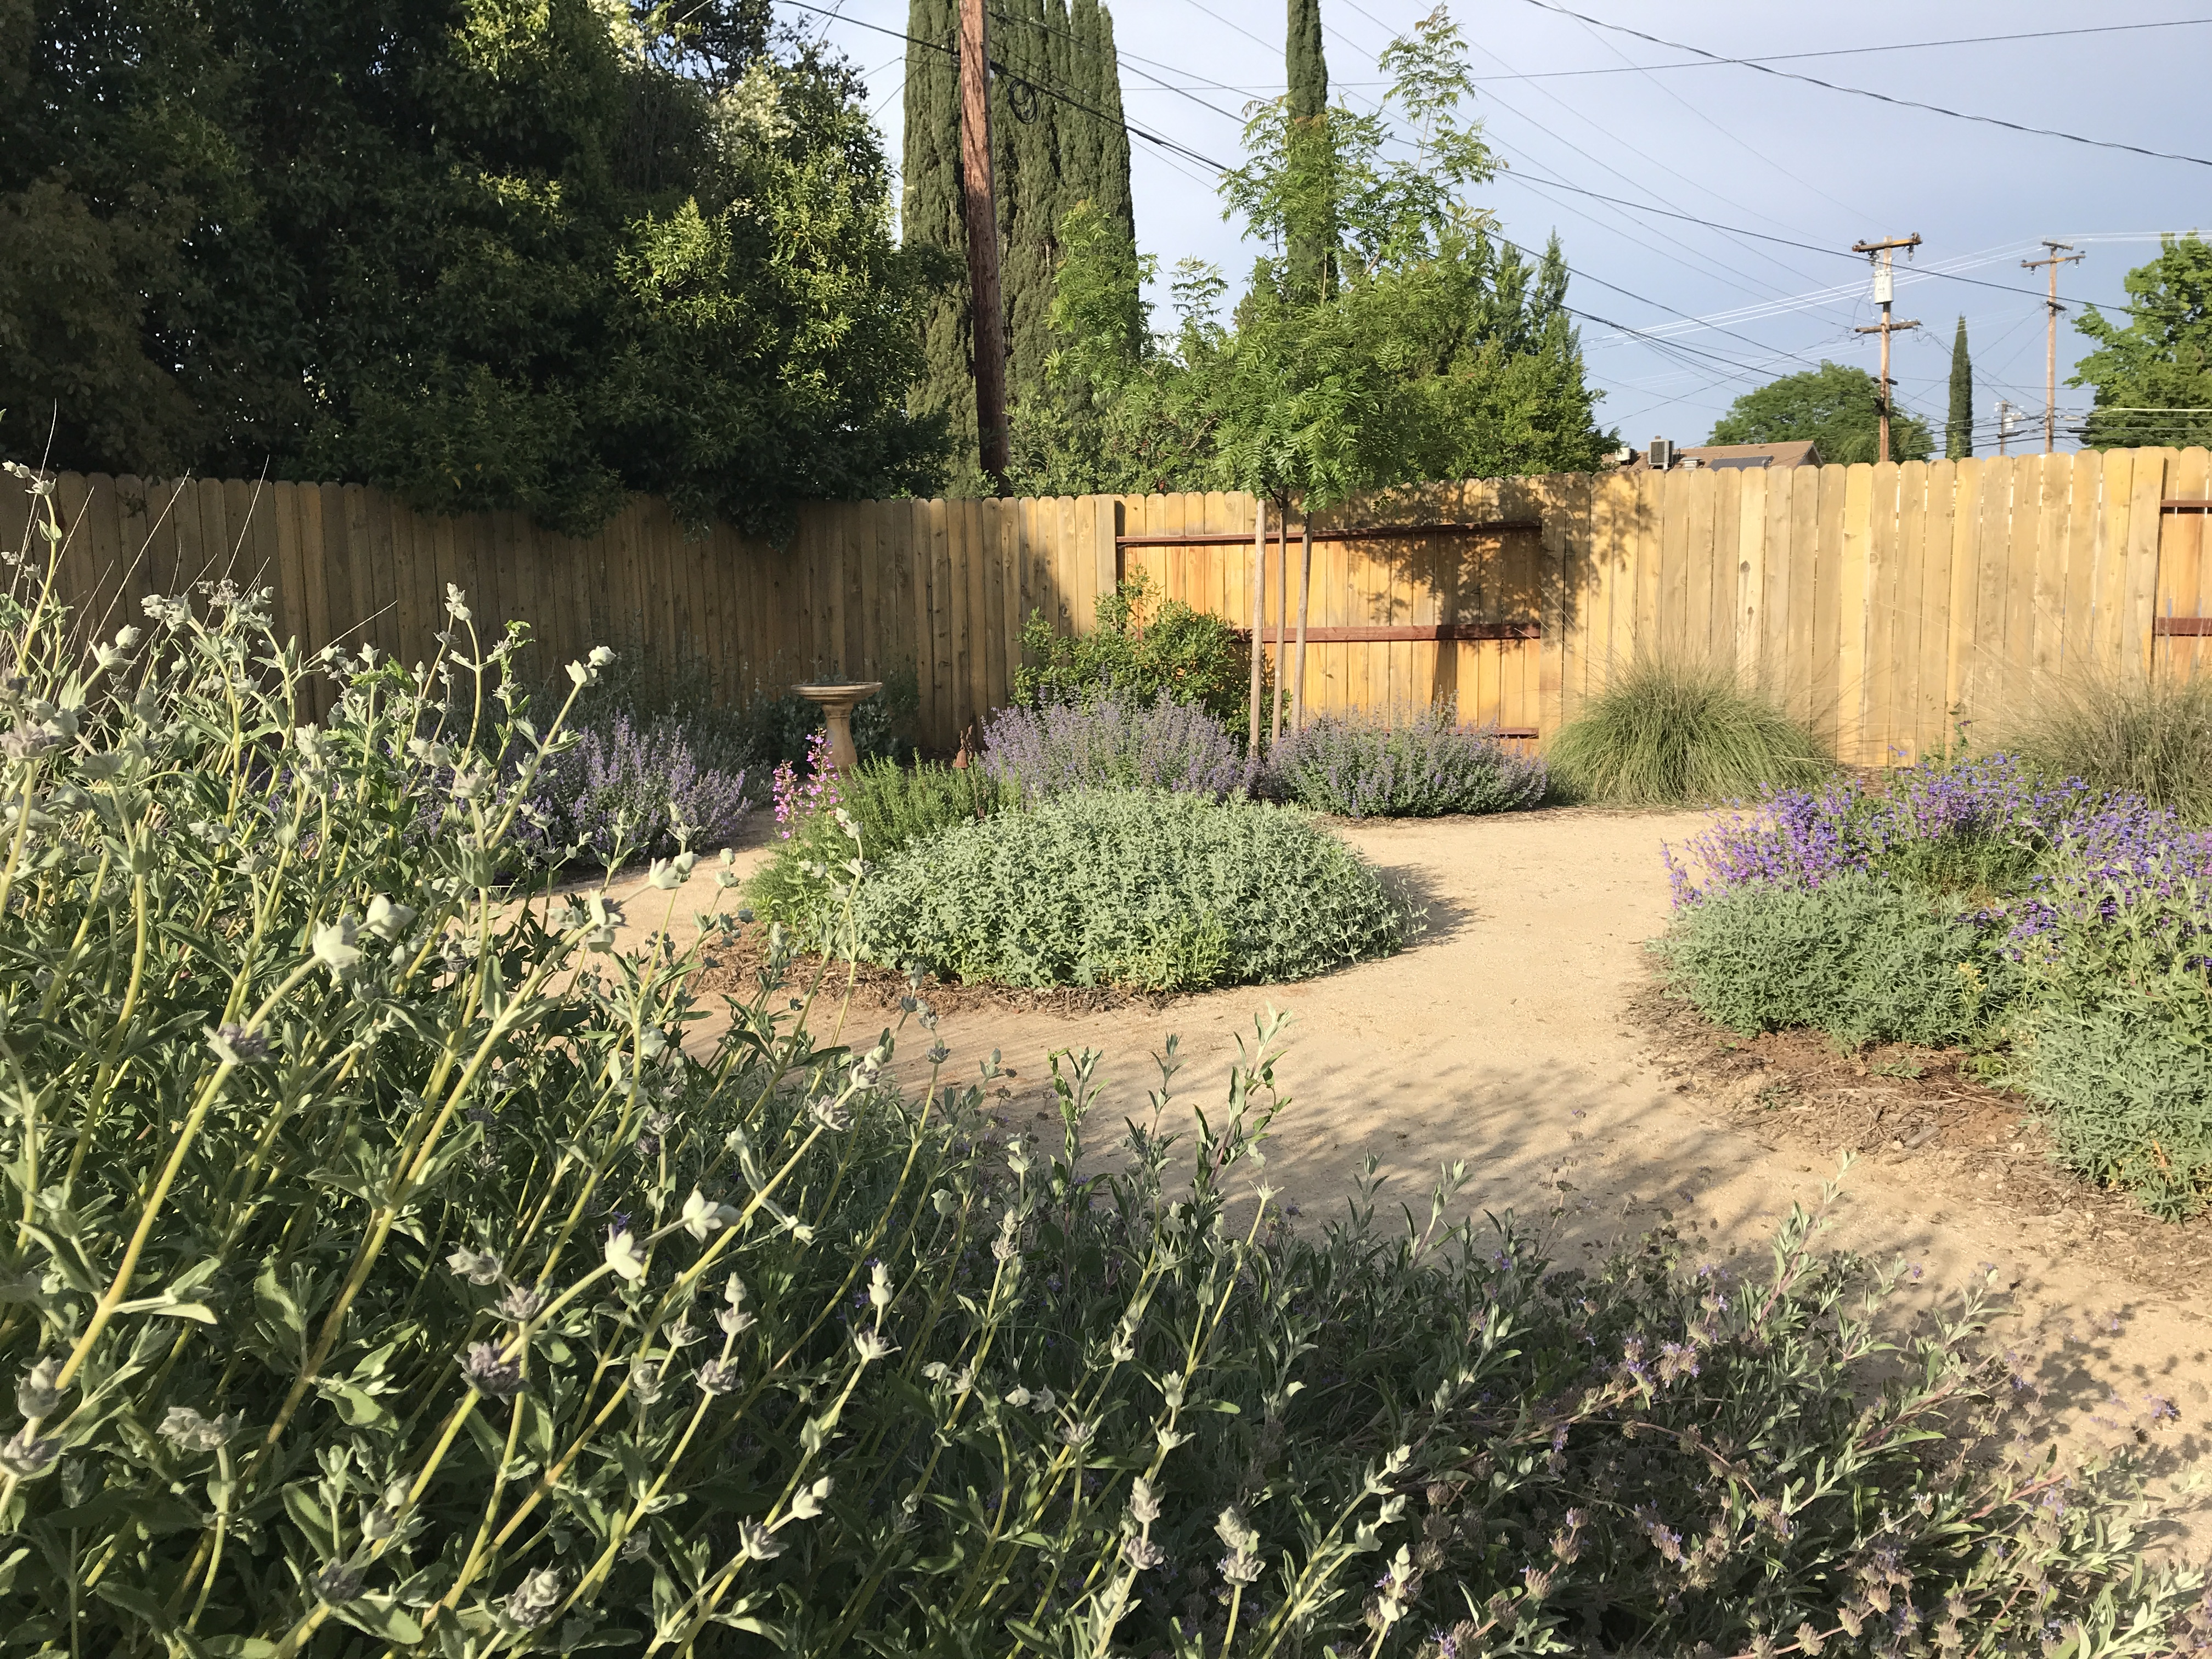 Drought tolerant plants line decomposed granite pathways